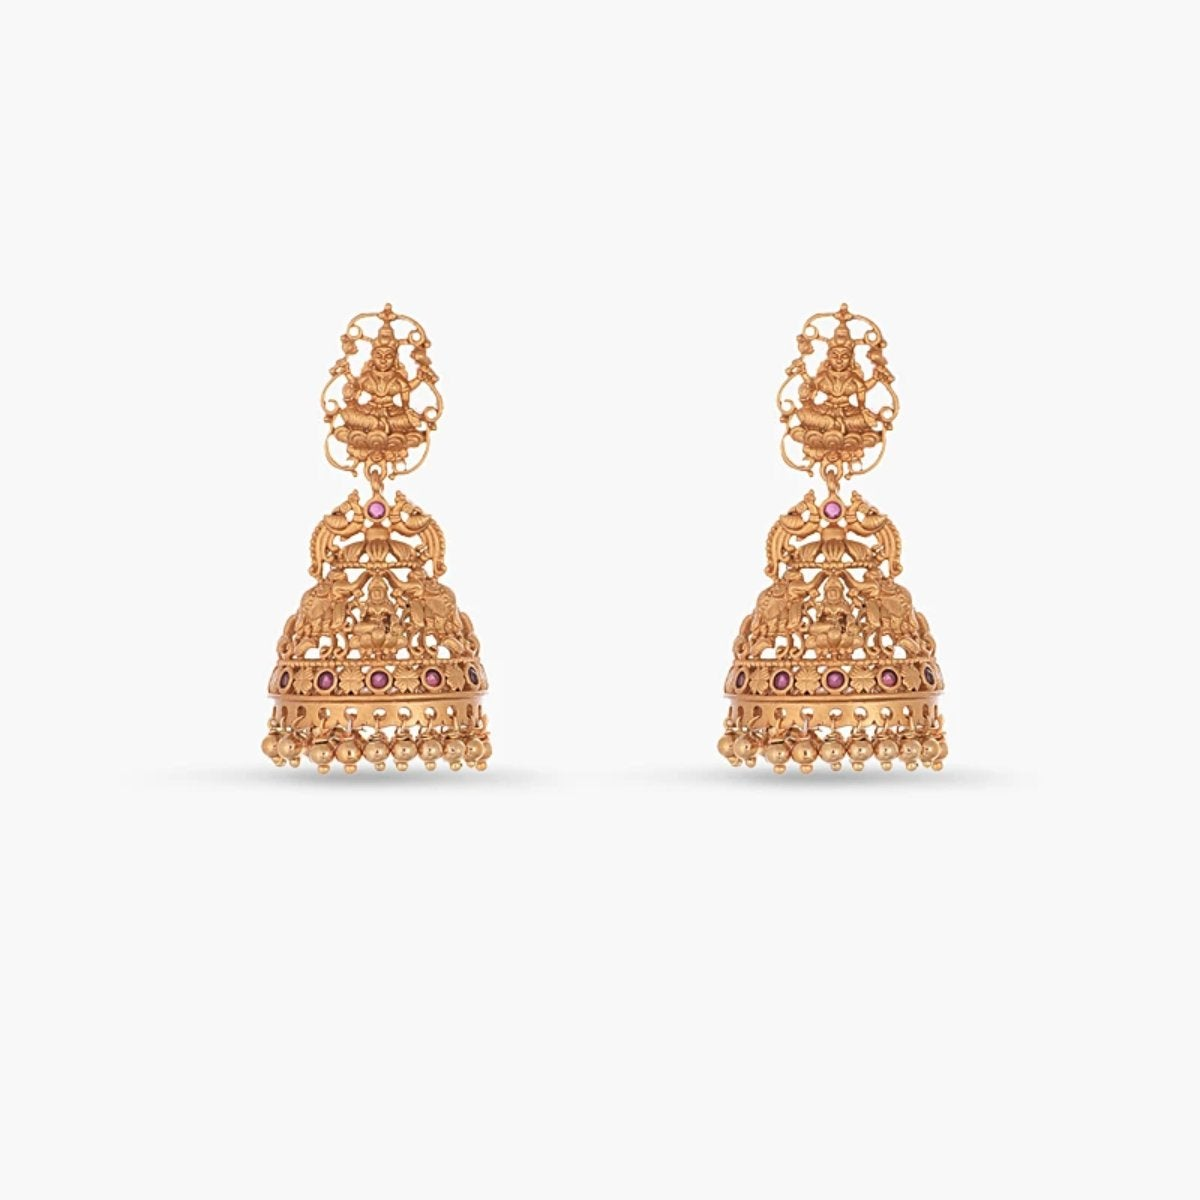 Aachal Antique Jhumka Earrings